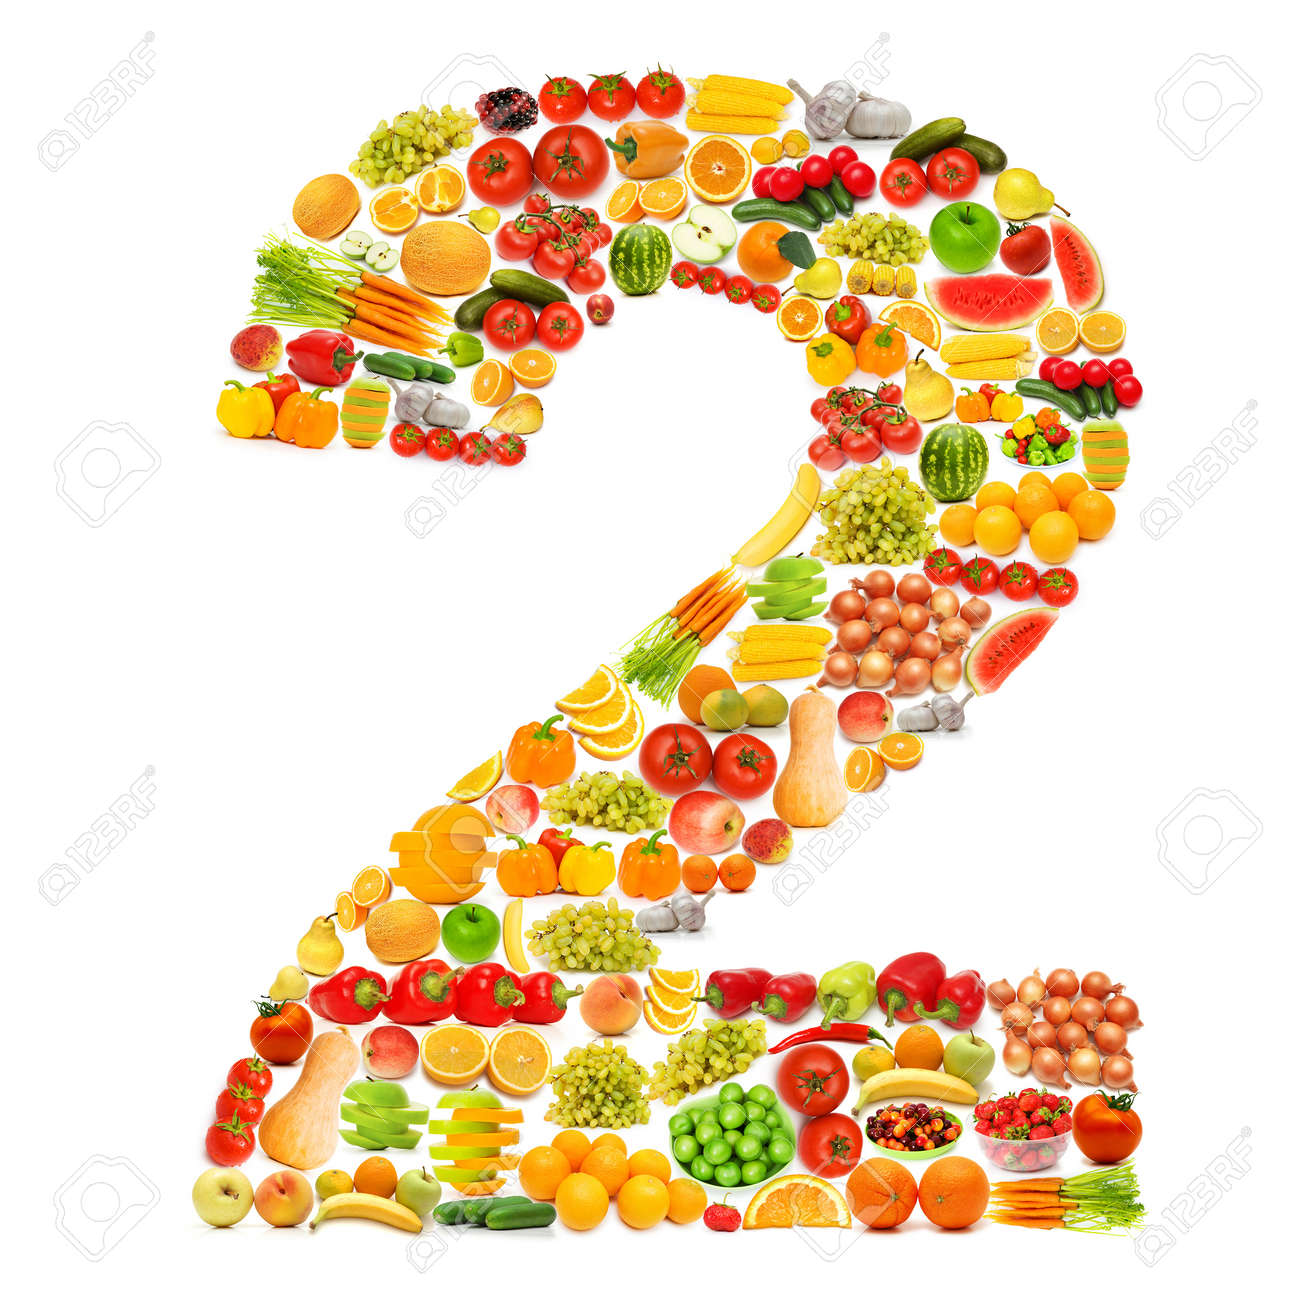 Alphabet made of many fruits and vegetables Stock Photo - 12227310